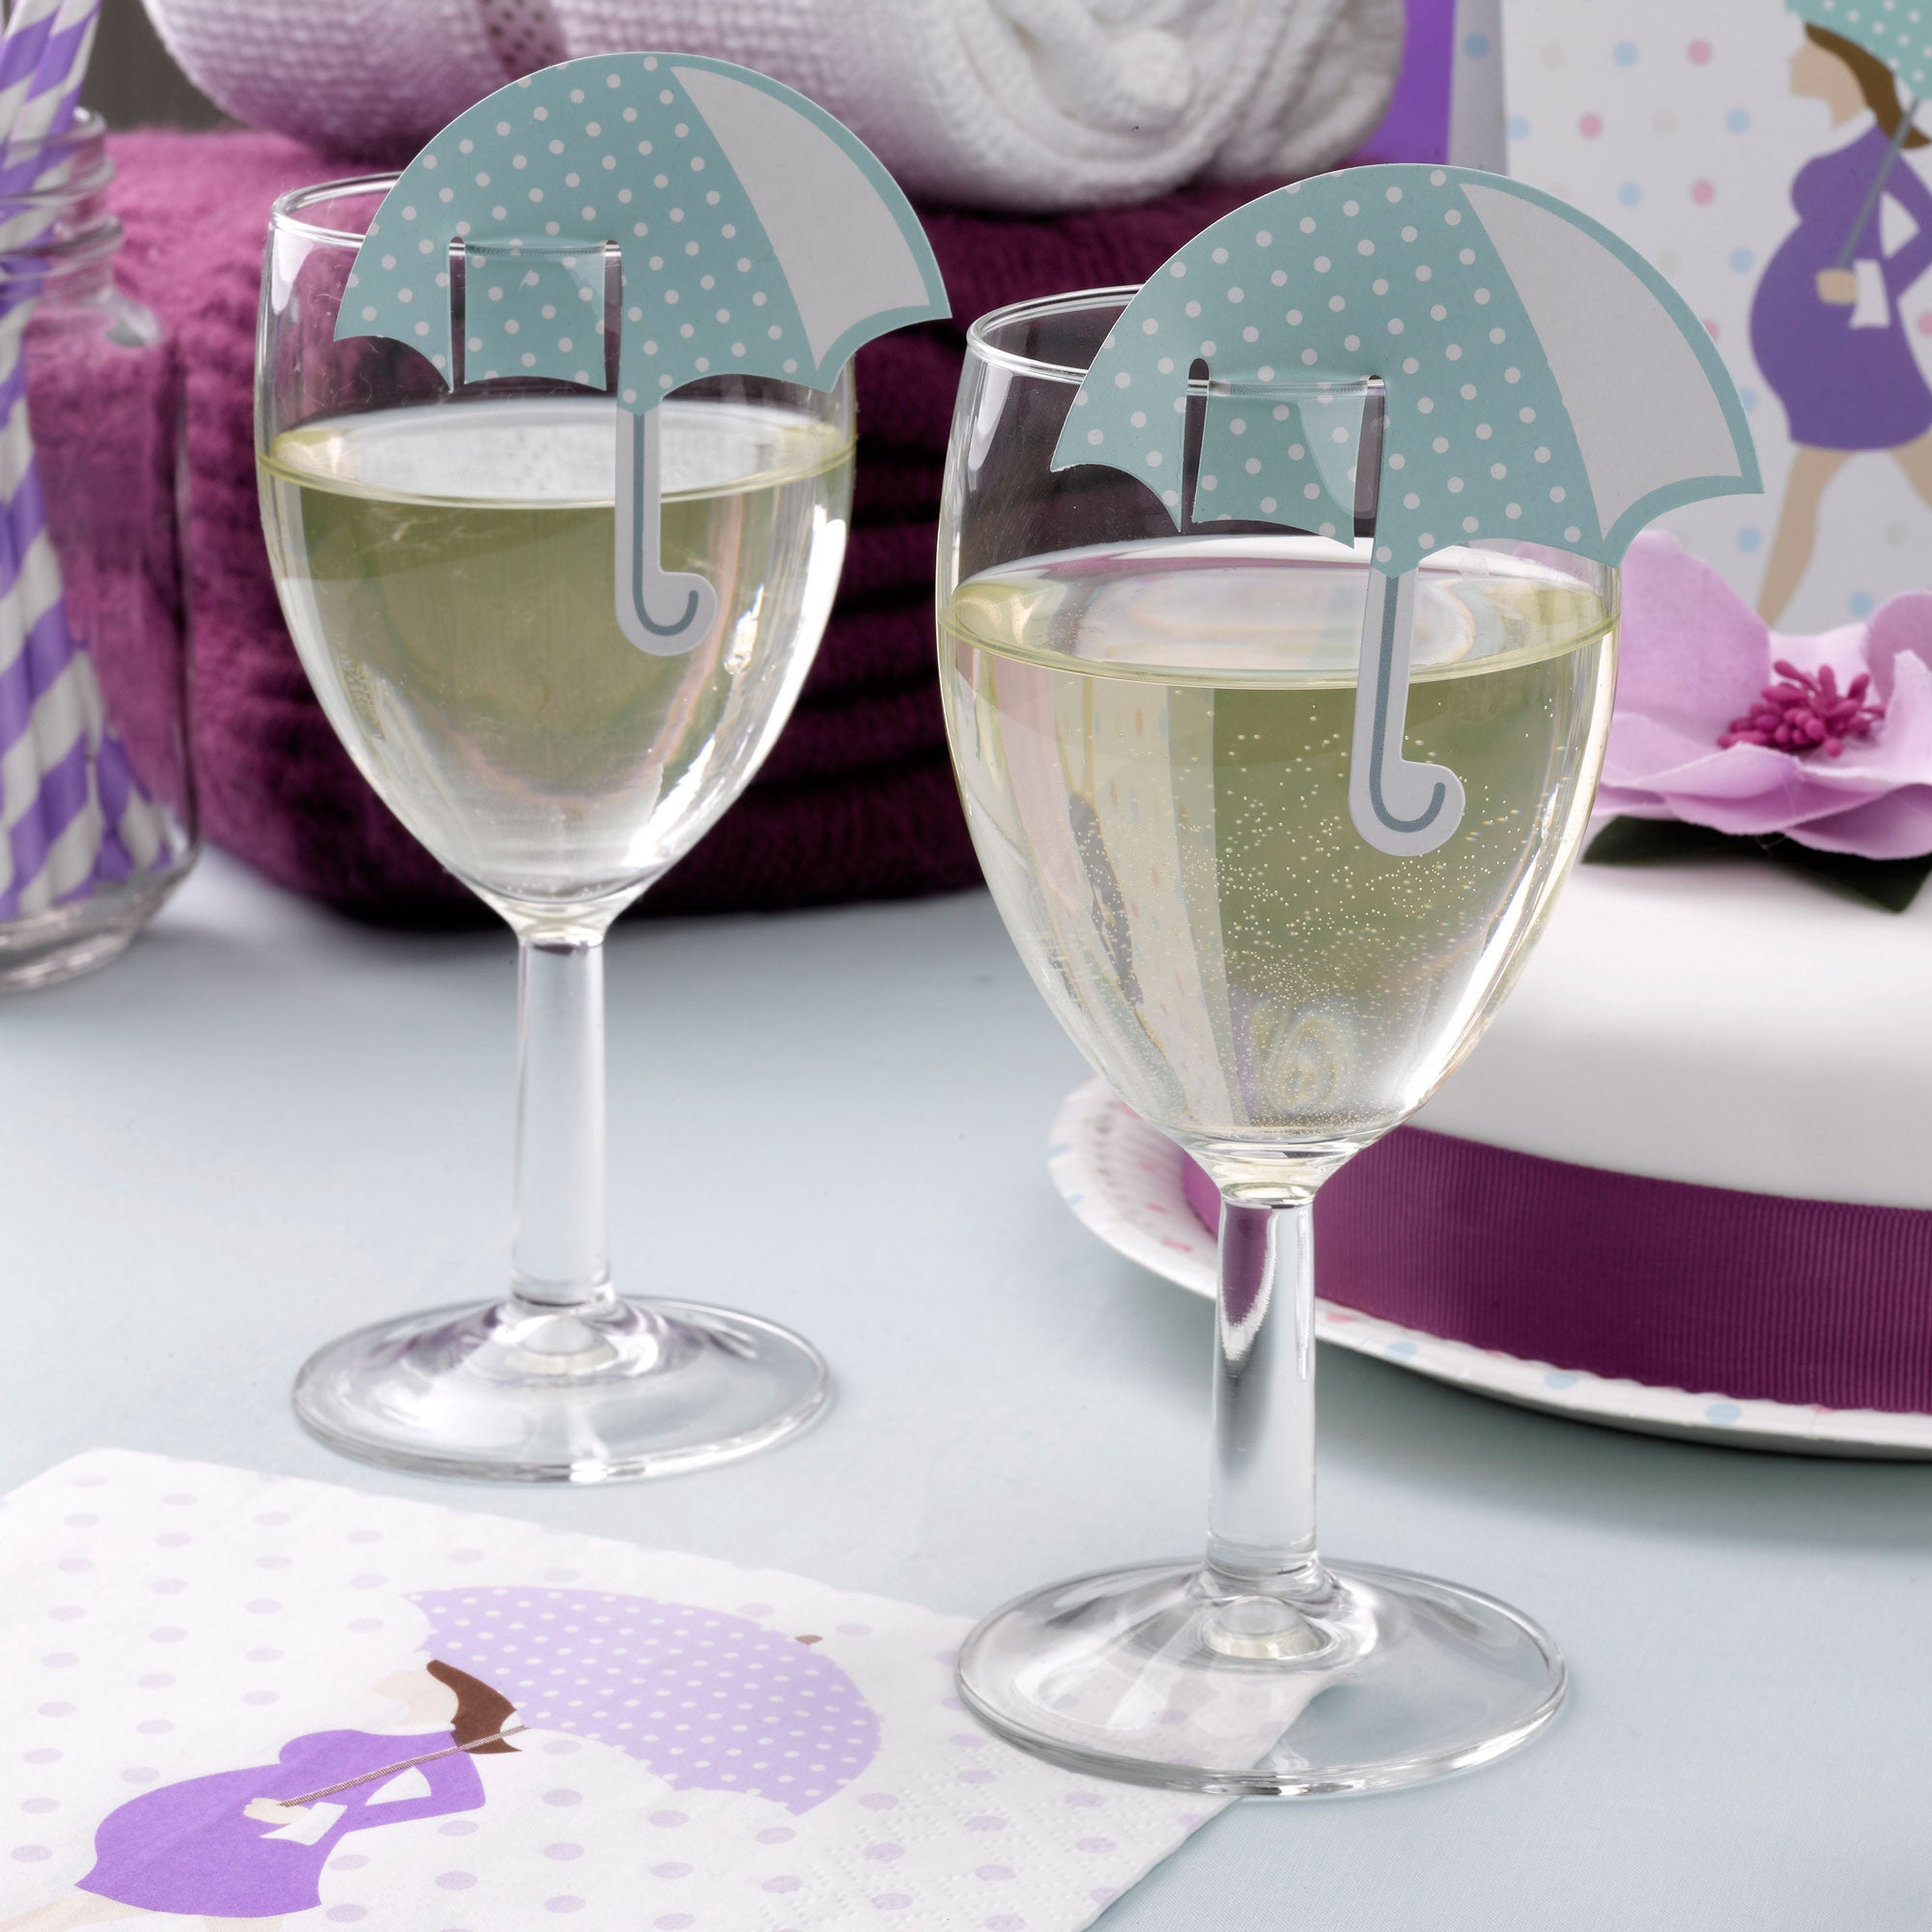 Glass Decorations: Showered With Love Glass Decoration - CLEARANCE